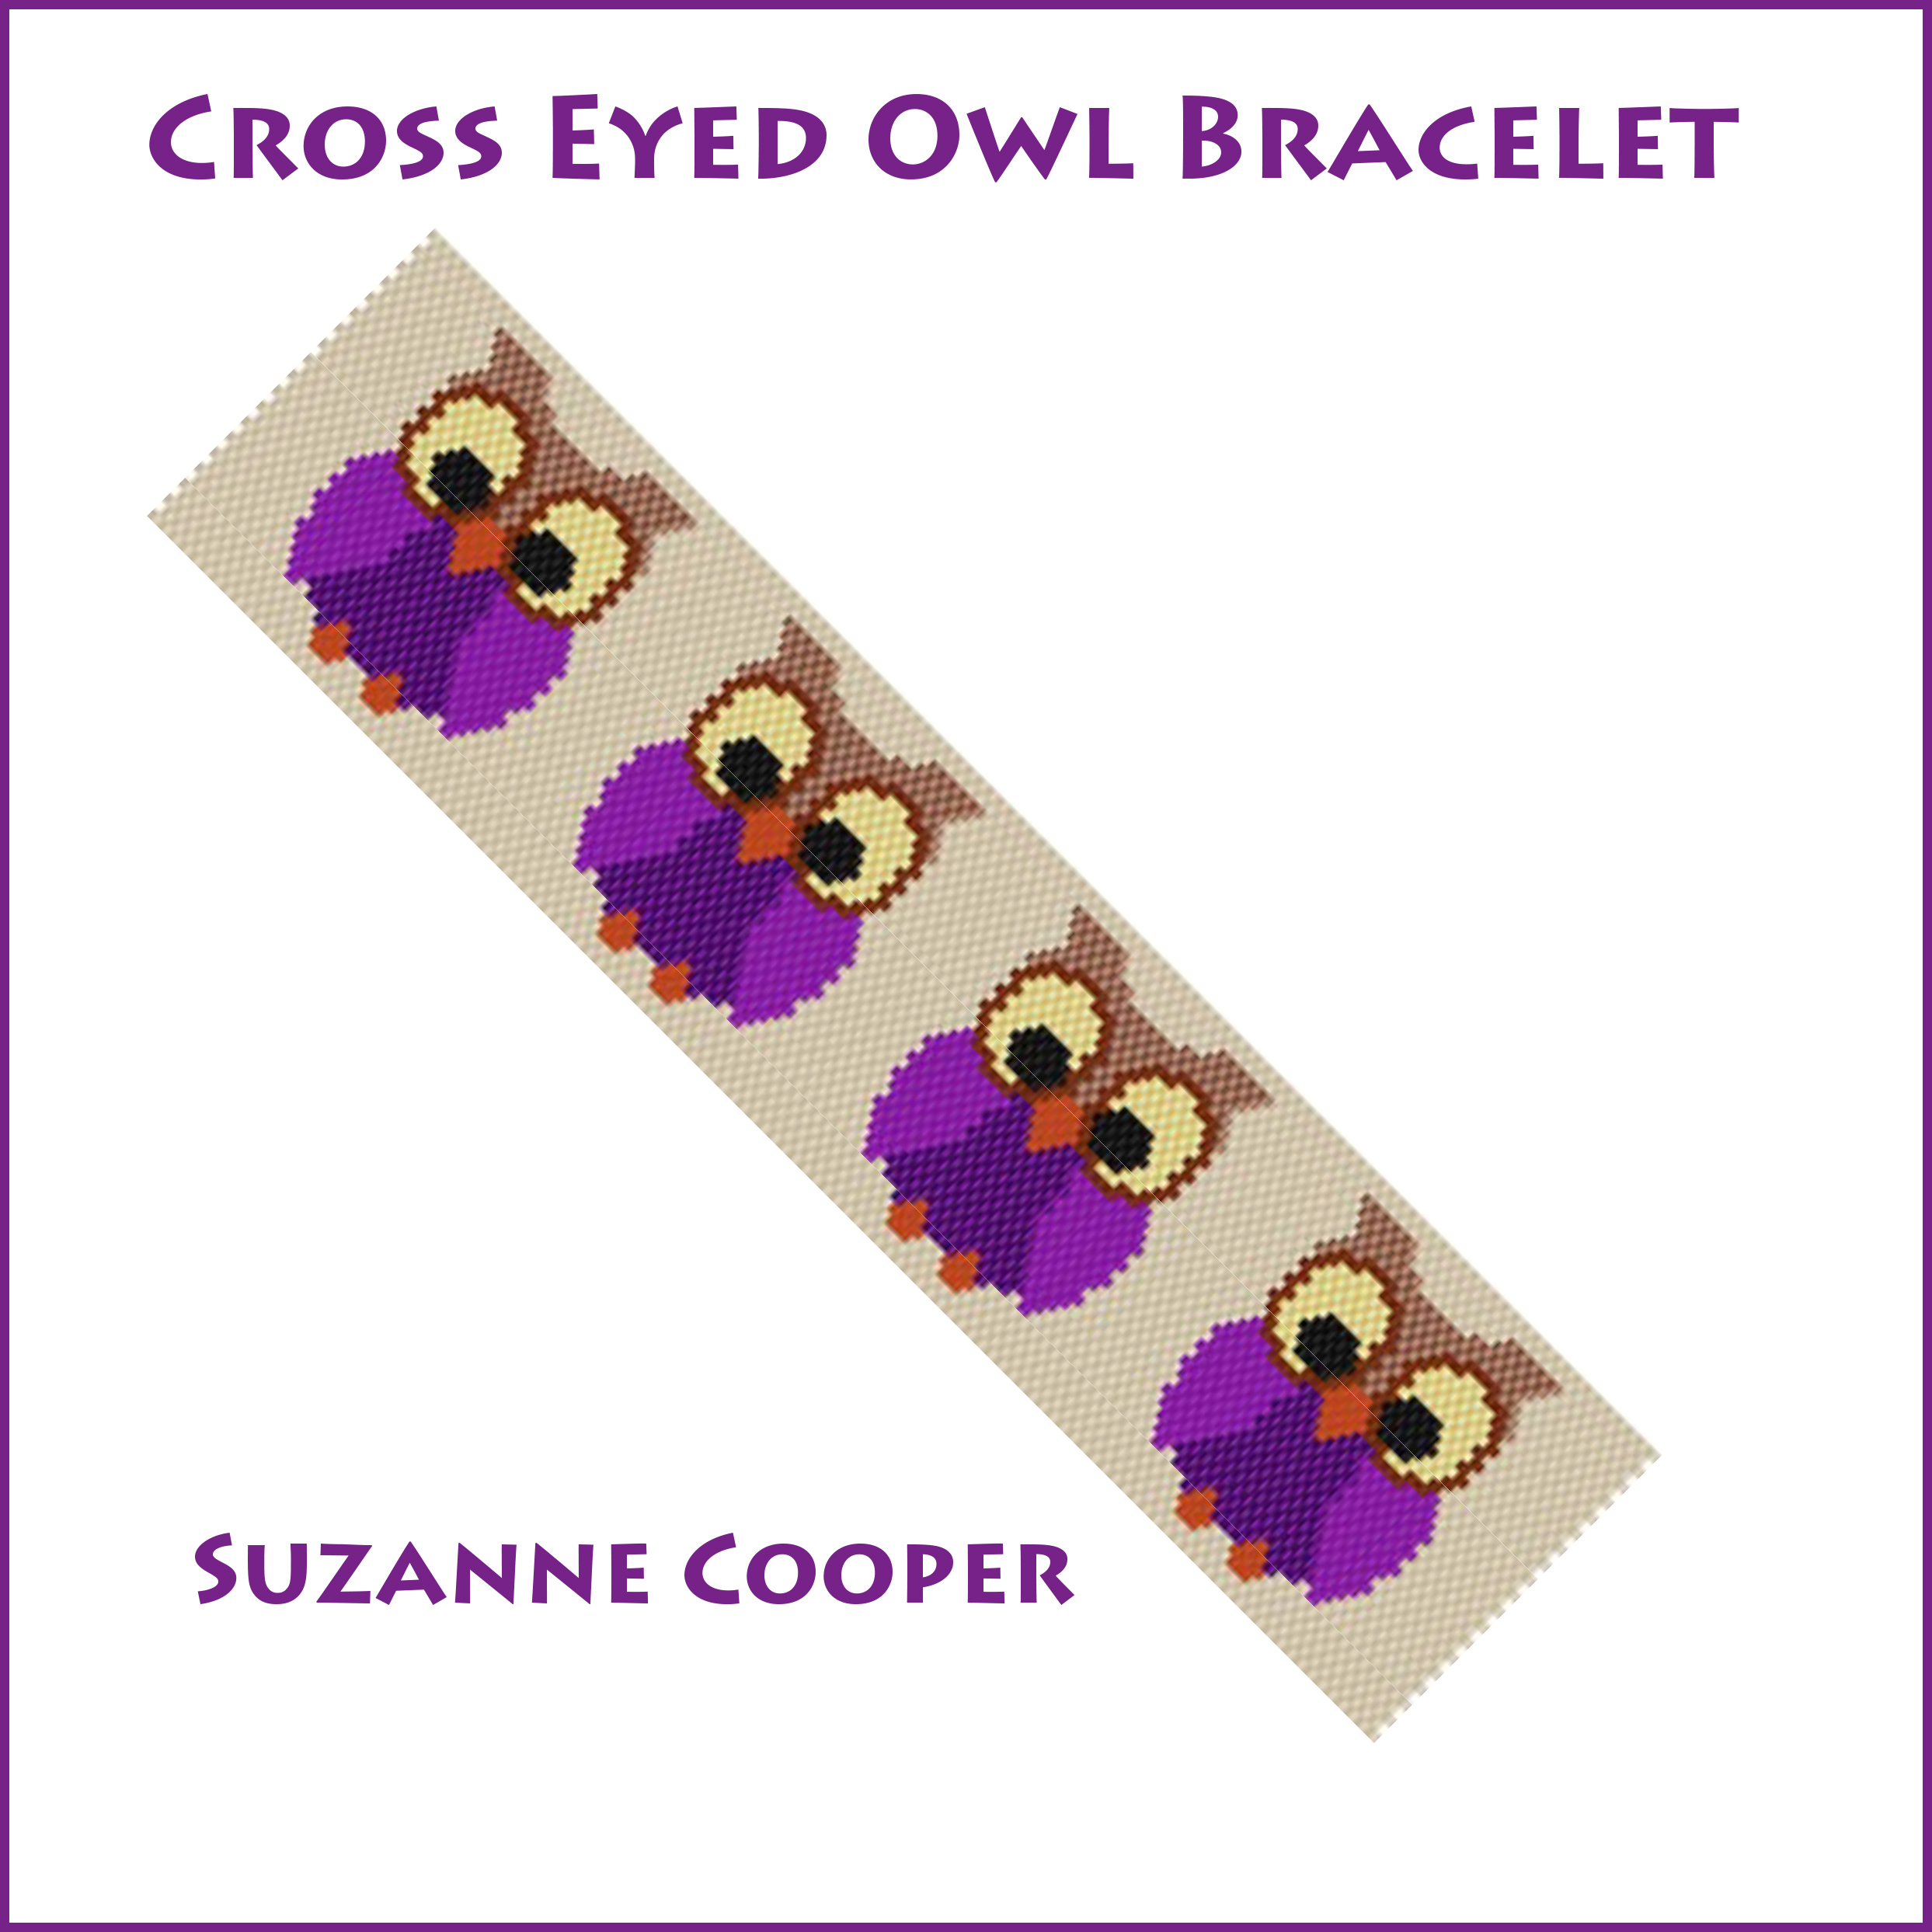 Cross Eyed Owl Bracelet